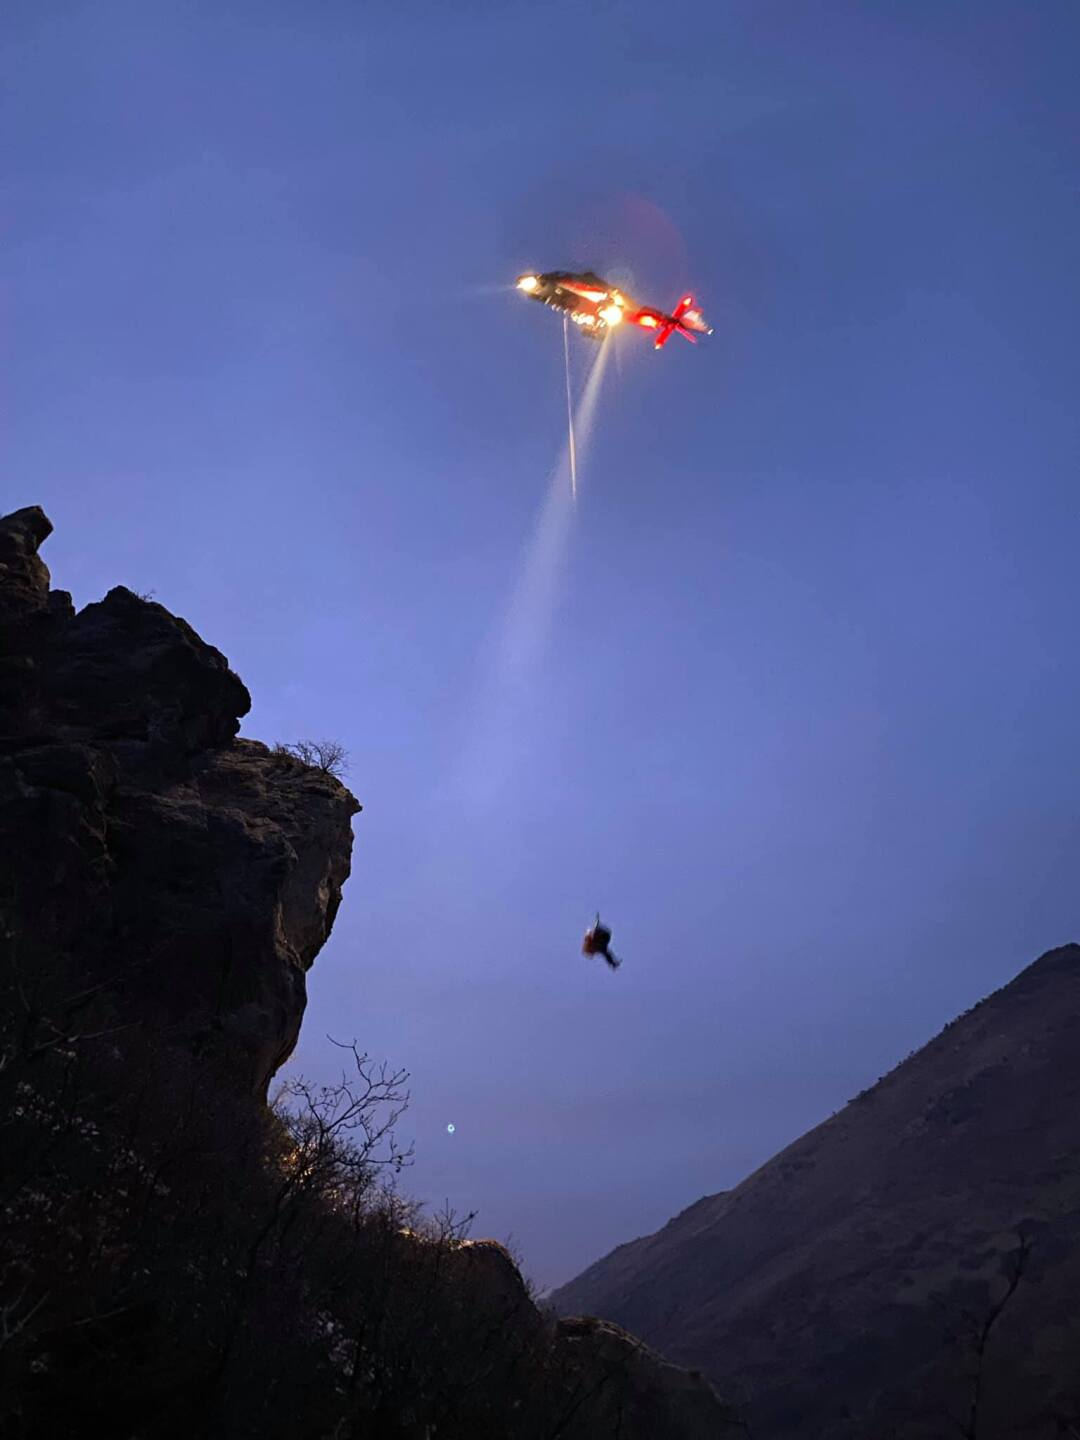 Injured hiker in Neff's Canyon